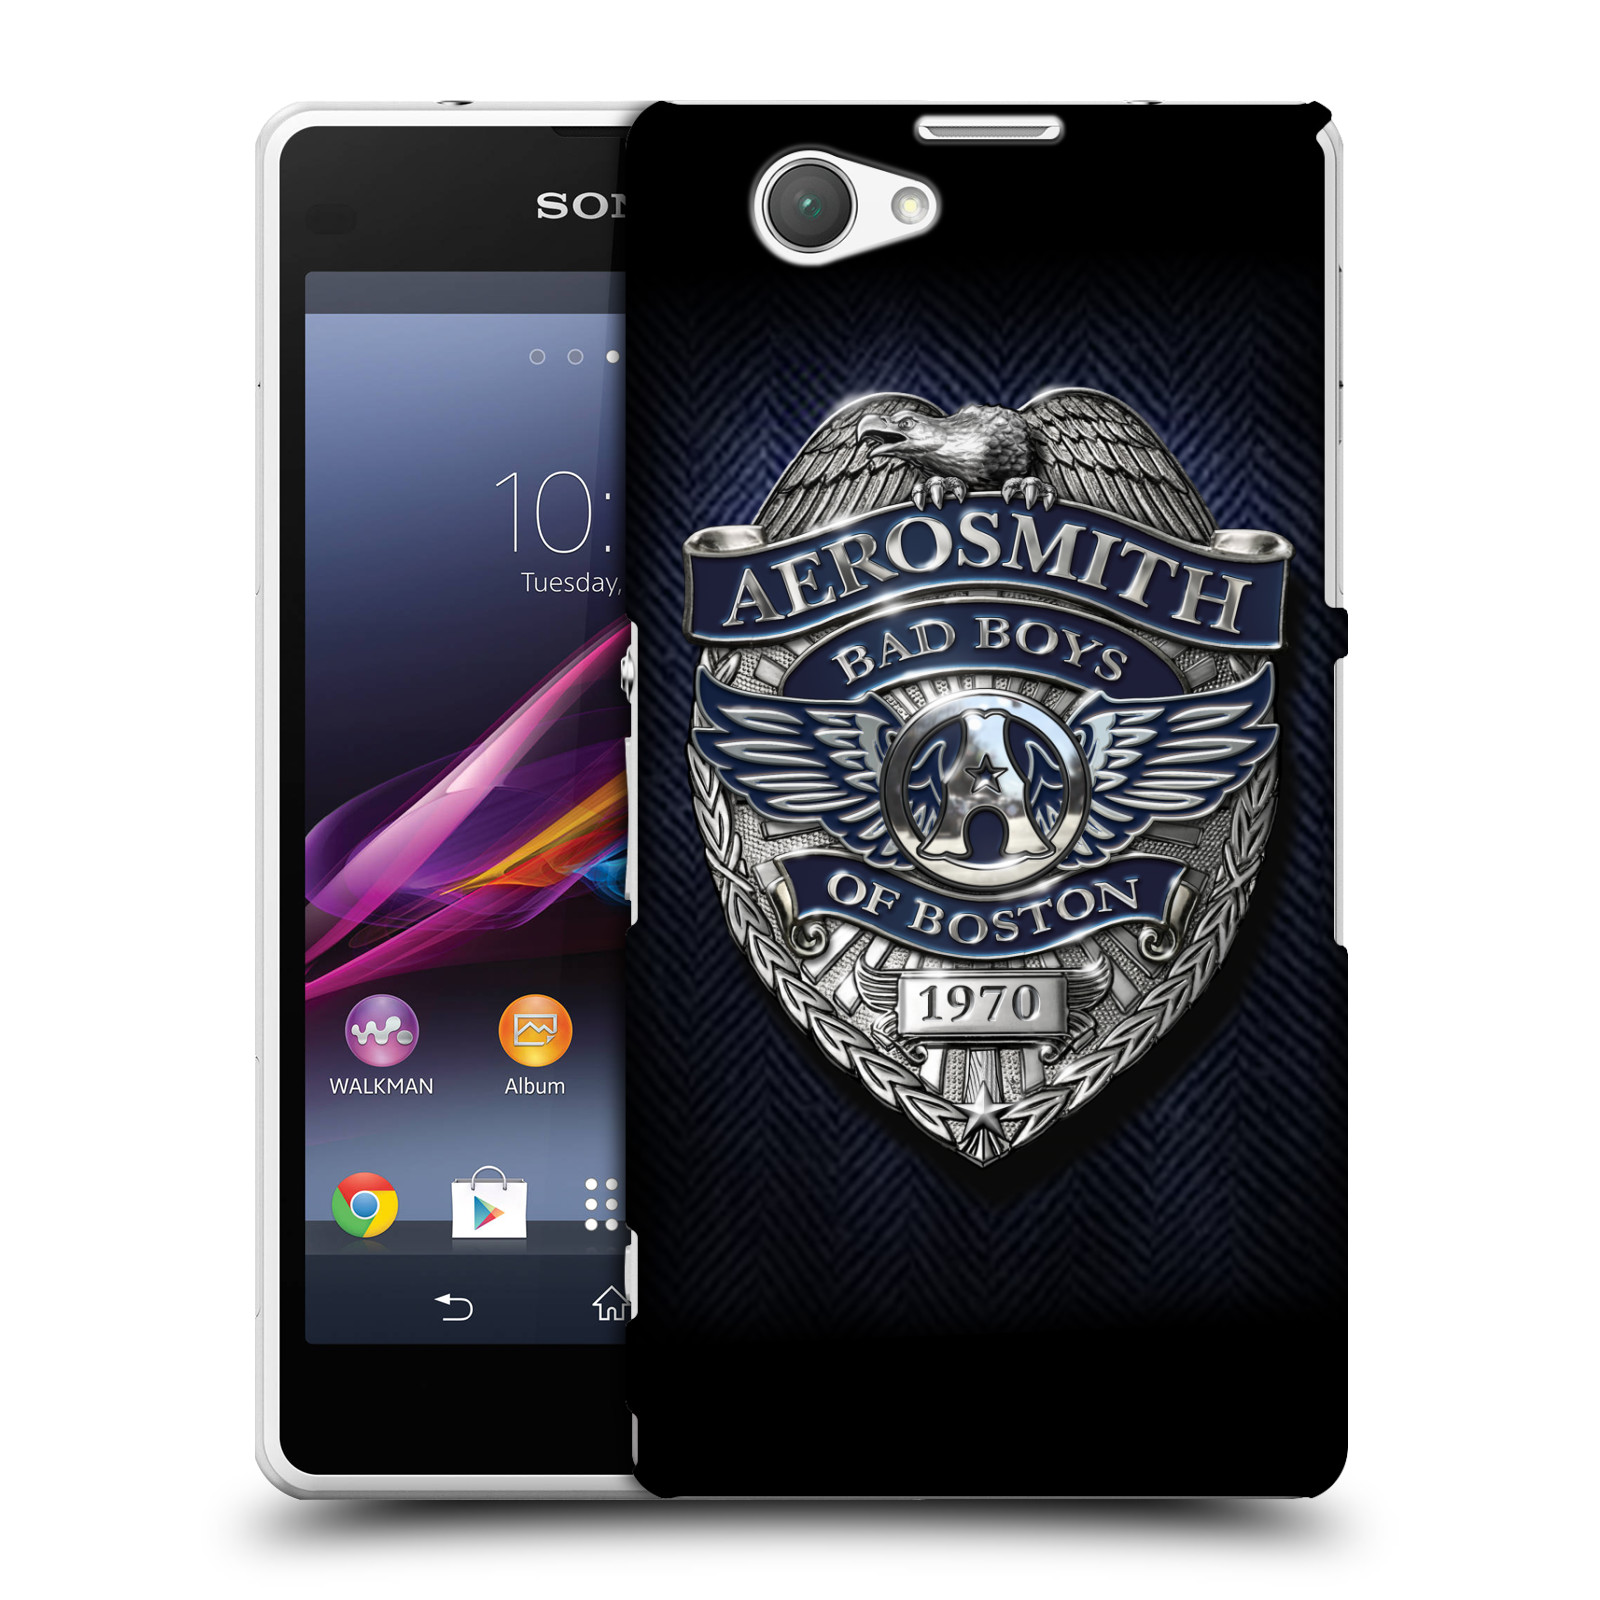 Plastové pouzdro na mobil Sony Xperia Z1 Compact D5503 HEAD CASE - Aerosmith - Bad Boys of Boston